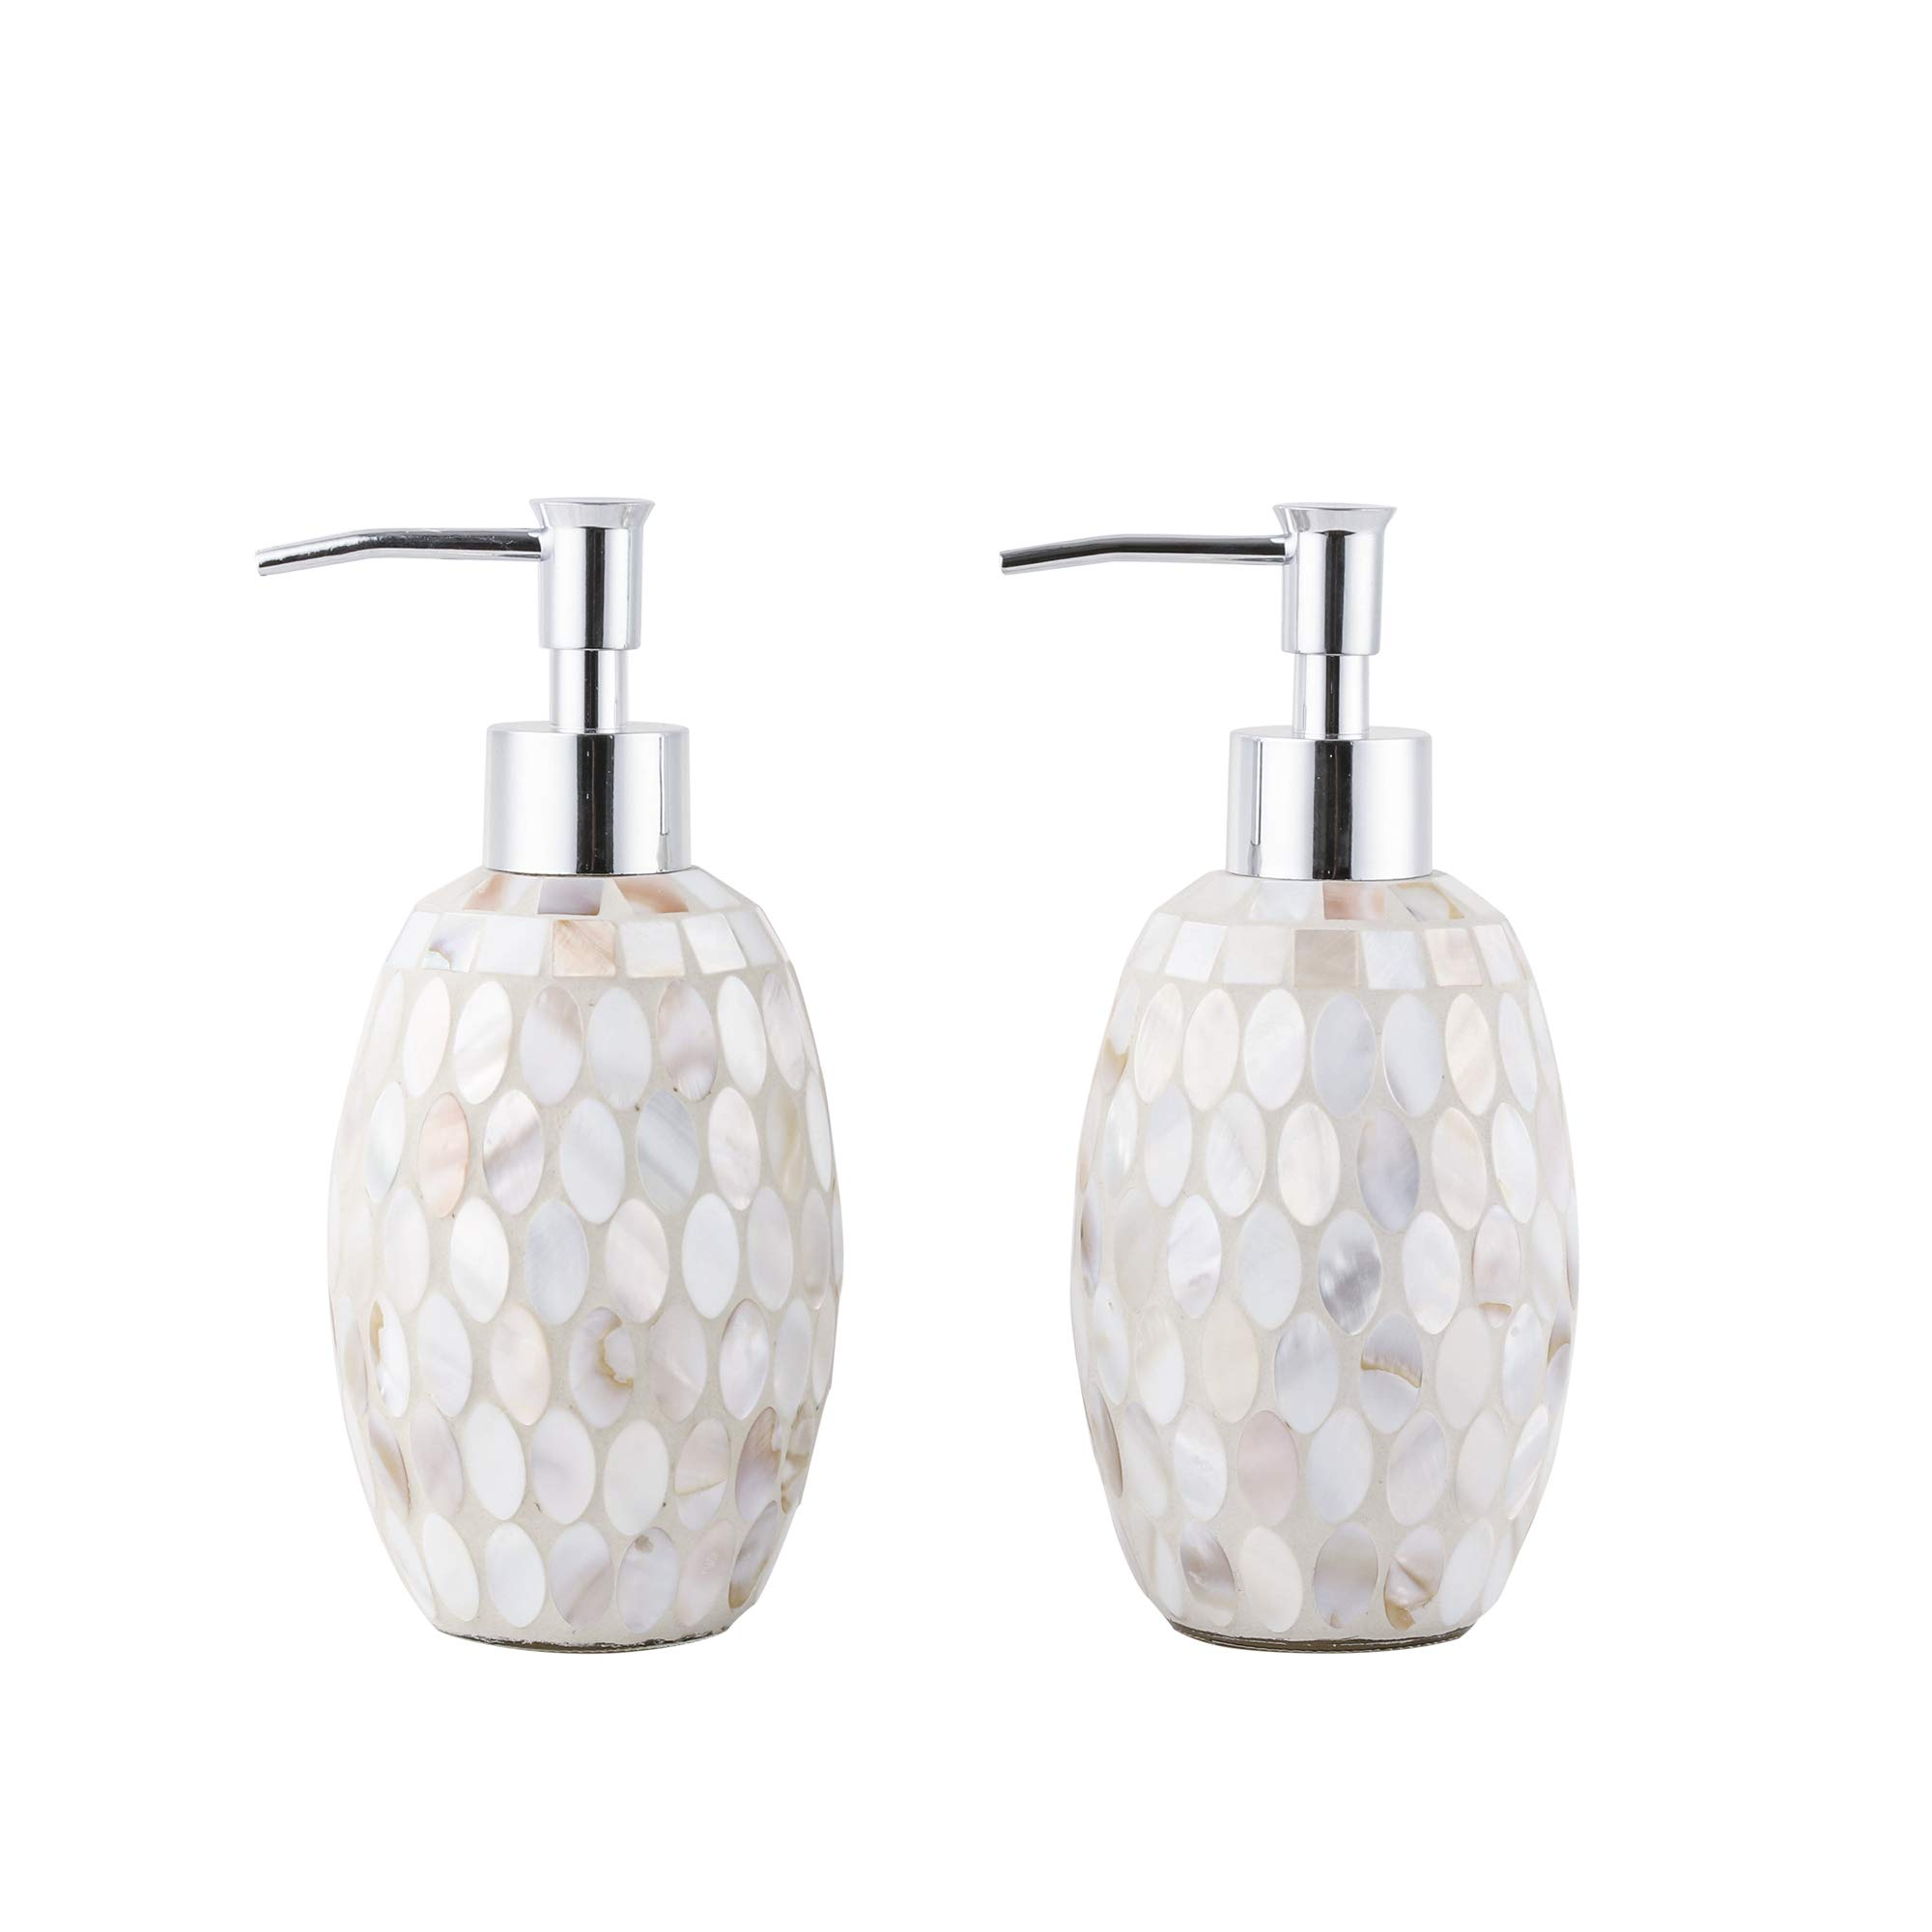 WH Housewares Set of 2 Soap Dispenser-Lotion Bottle-12OZ-Mosaic Pearl Chrome Plated Plastic Pump(Pearl)